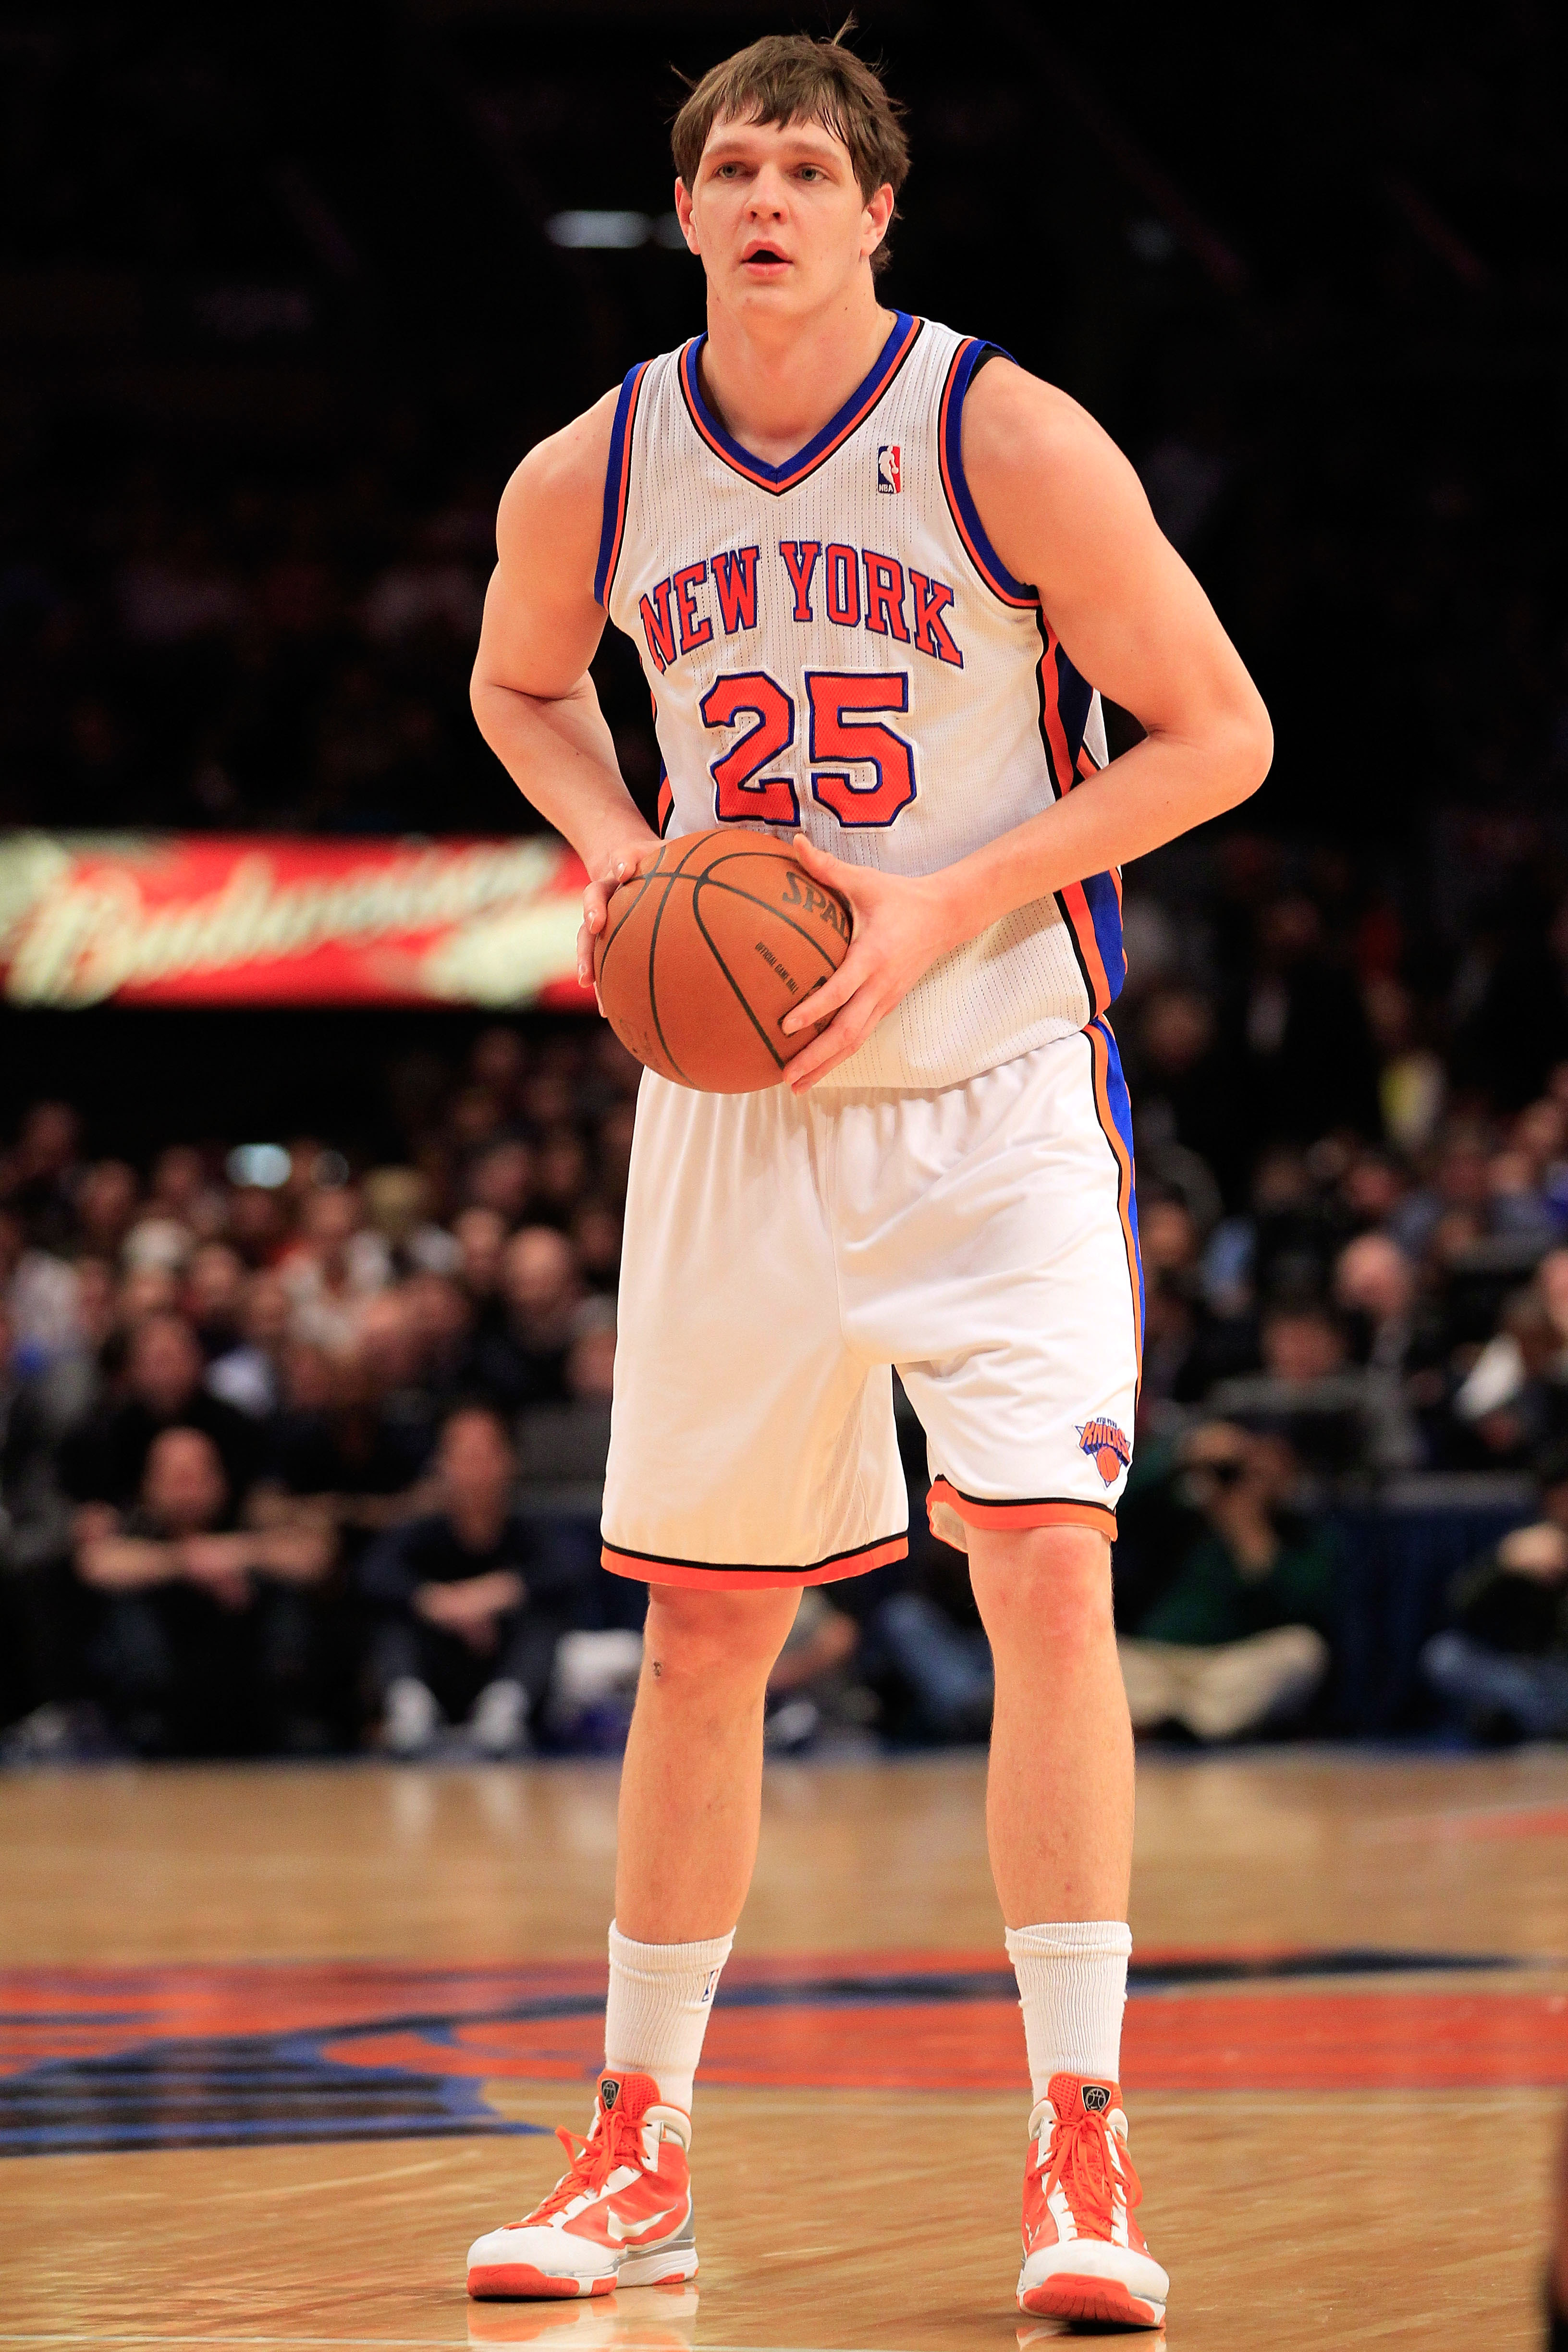 NEW YORK, NY - FEBRUARY 09:  Timofey Mozgov #25 of the New York Knicks handles the ball against the Los Angeles Clippers at Madison Square Garden on February 9, 2011 in New York City. NOTE TO USER: User expressly acknowledges and agrees that, by downloadi